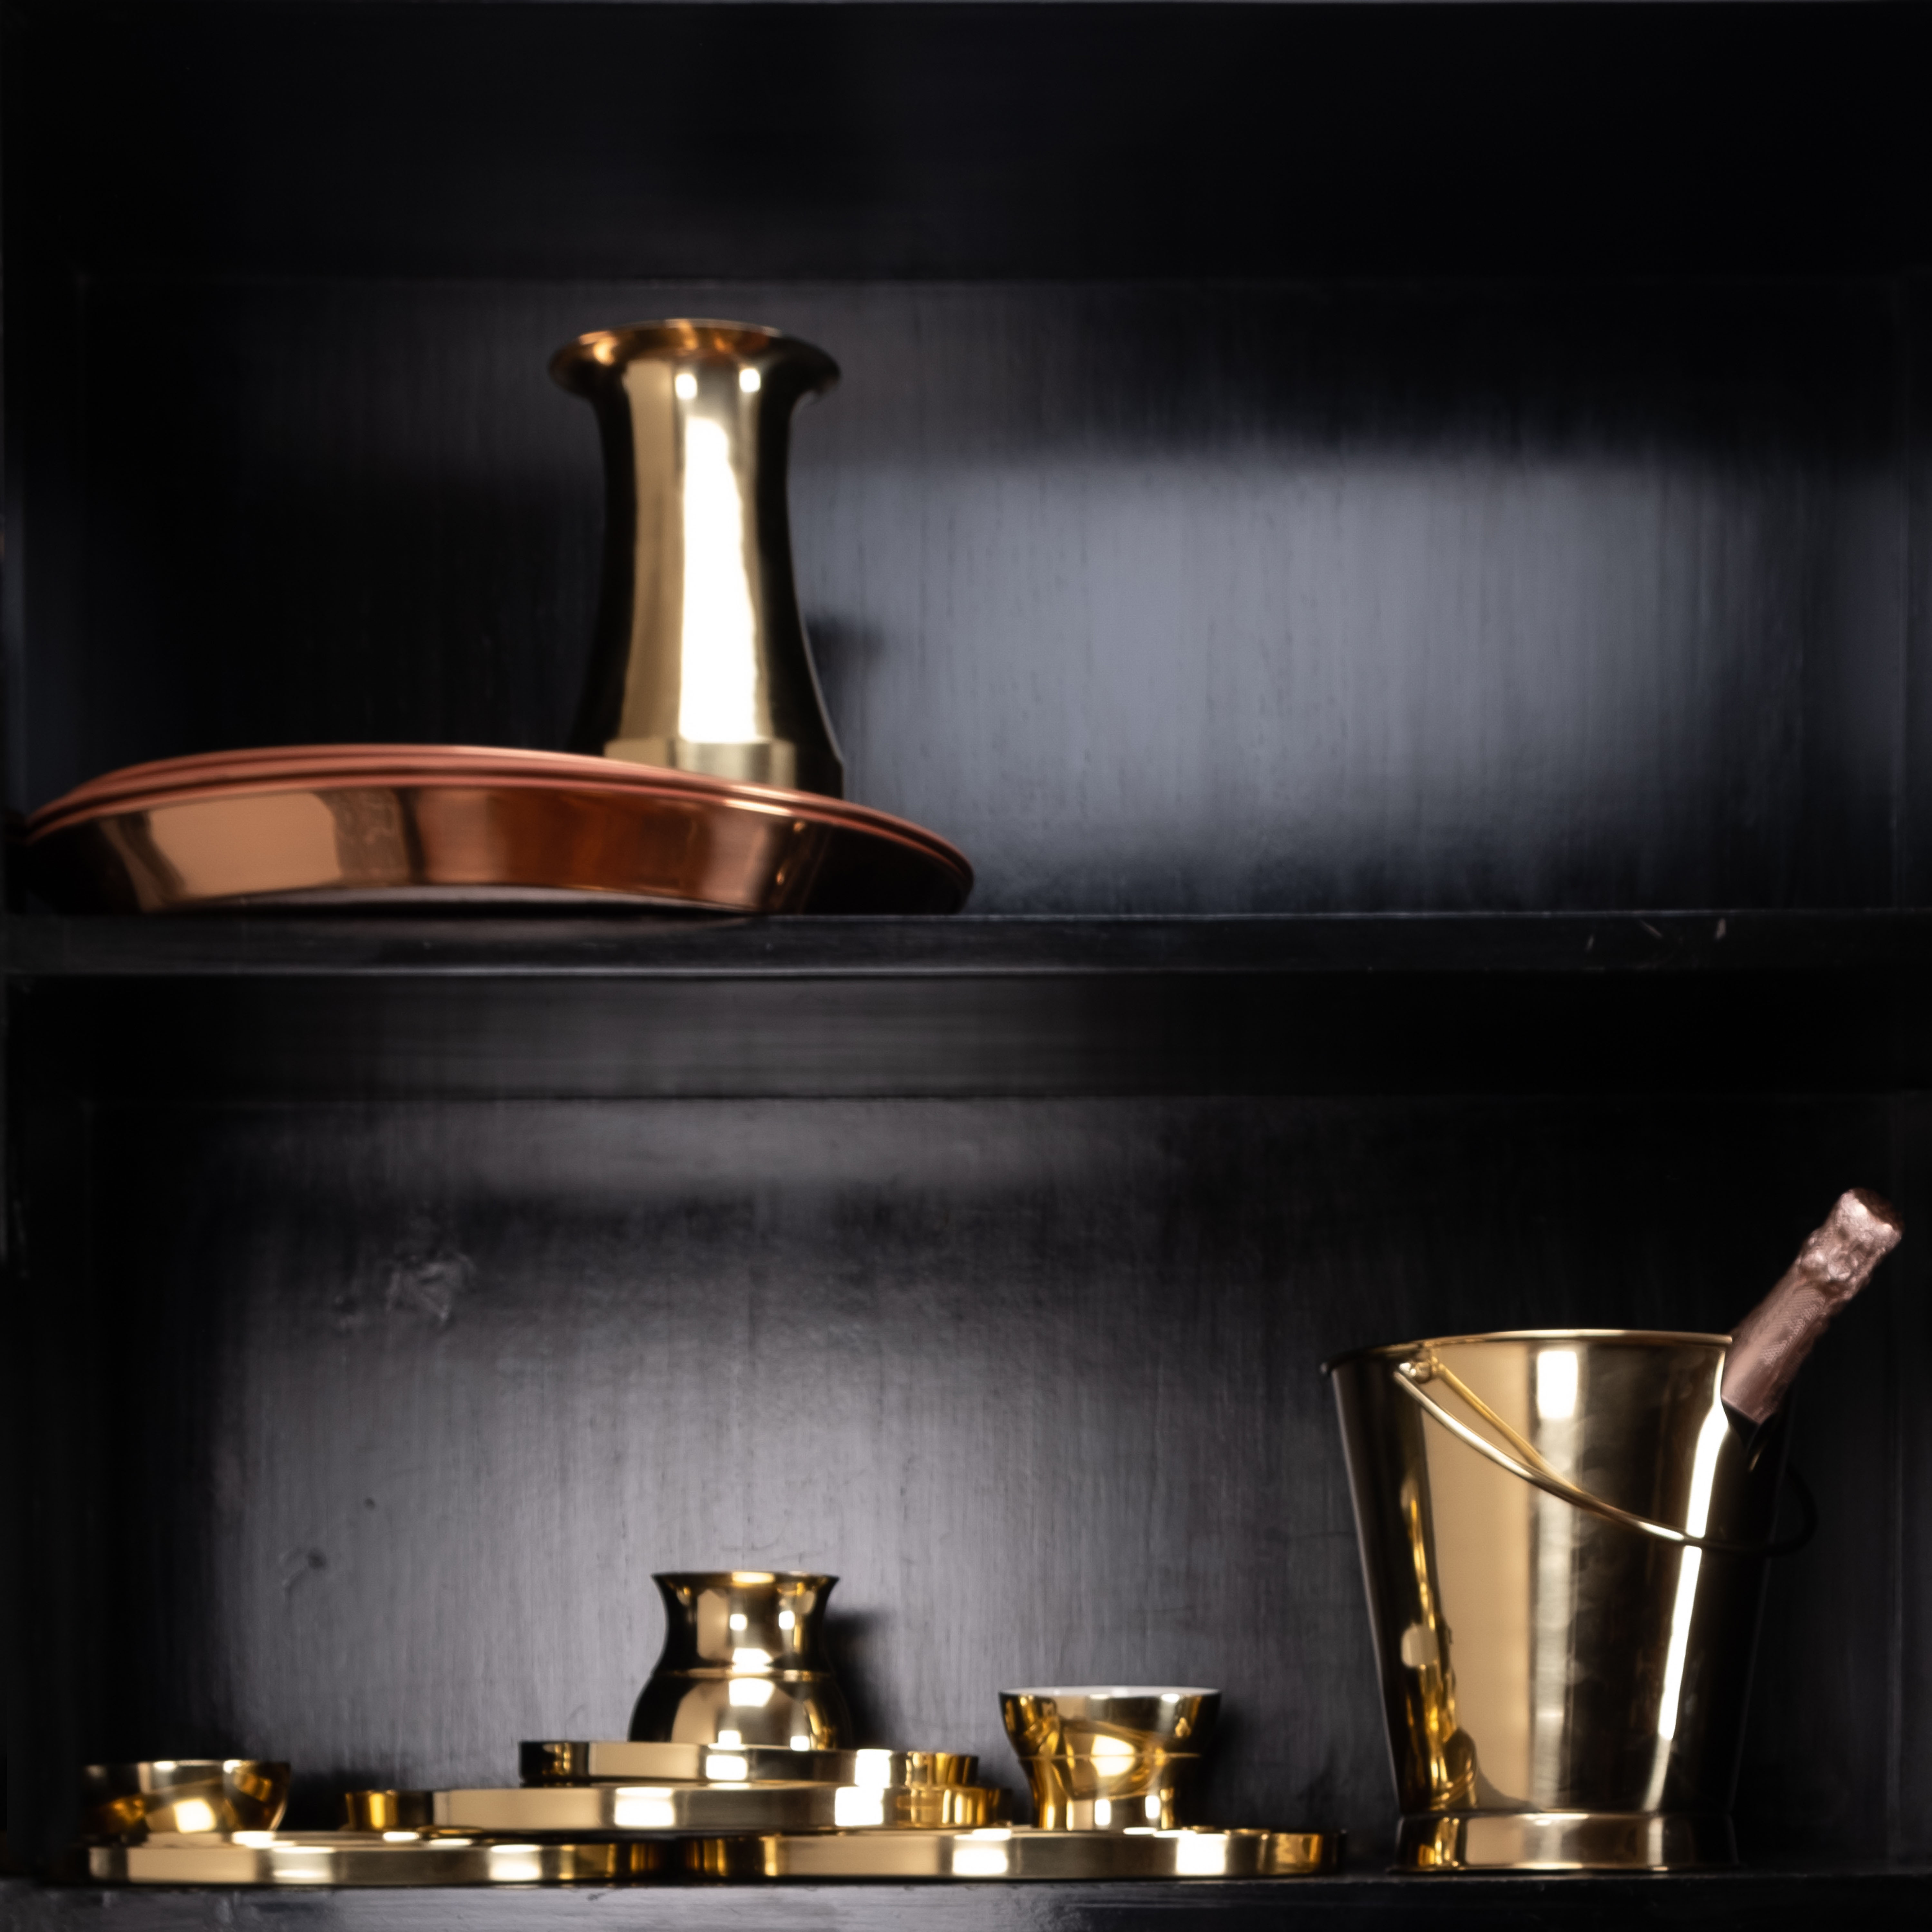 Homeware by Ikkis at Clove